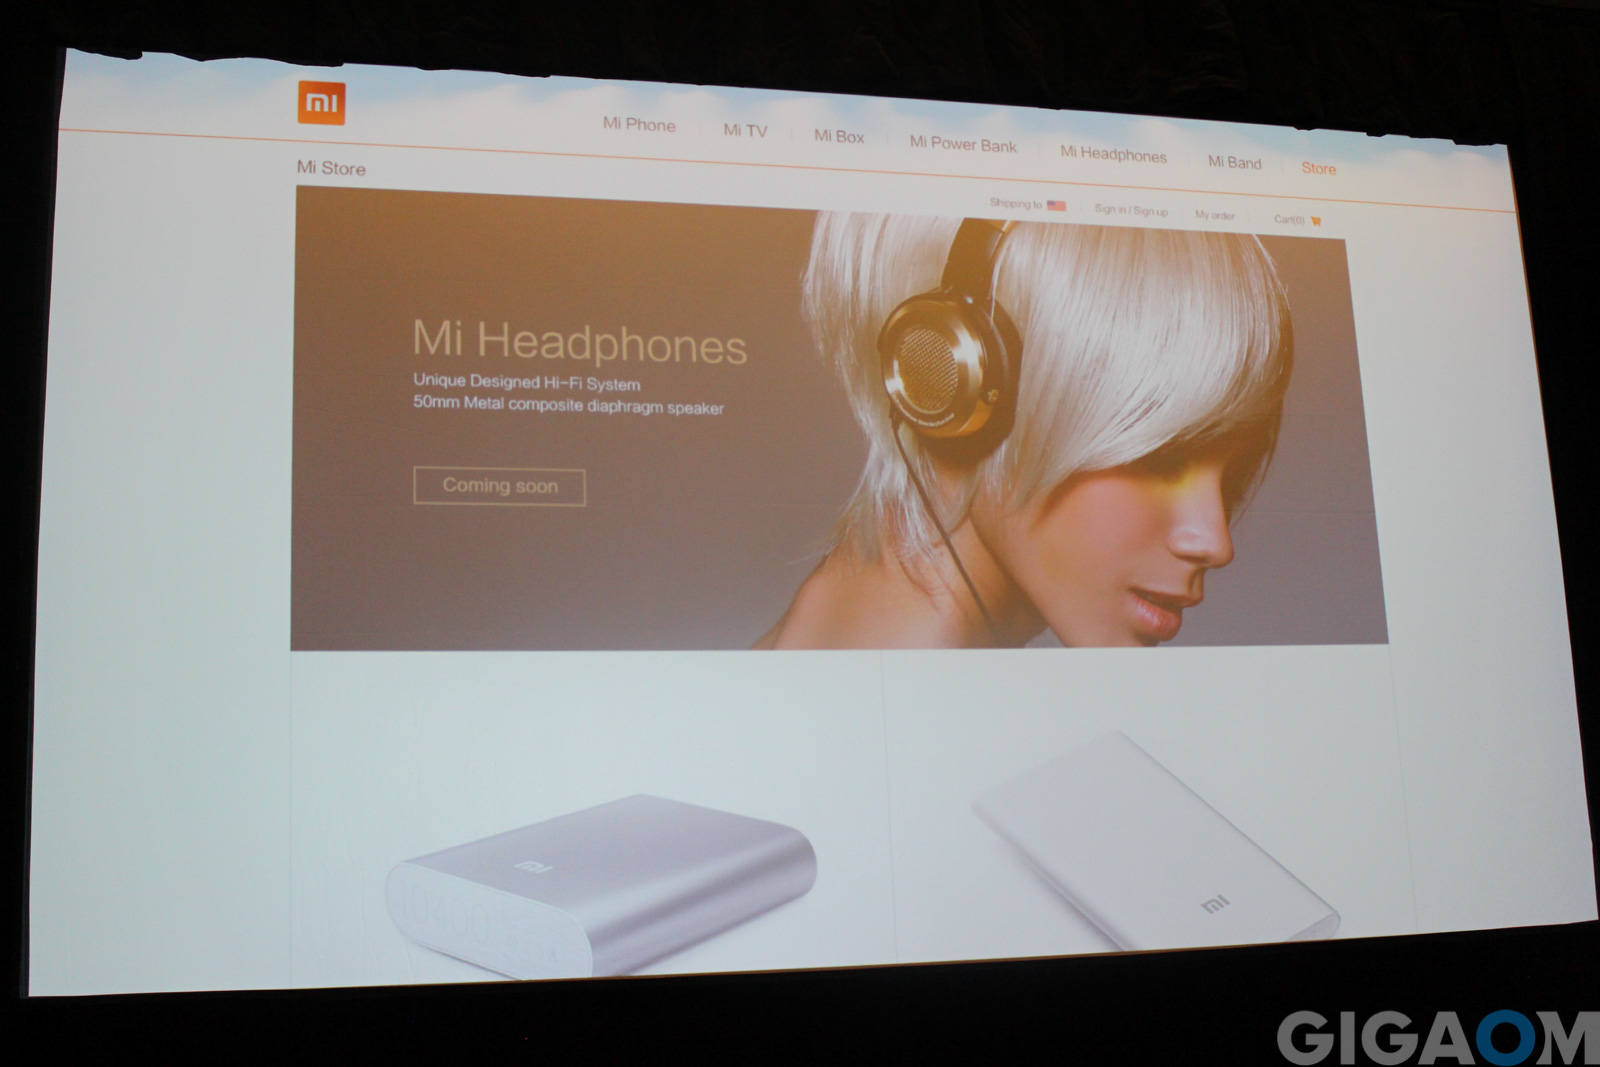 Xiaomi's website, as it will be available to U.S. users soon.